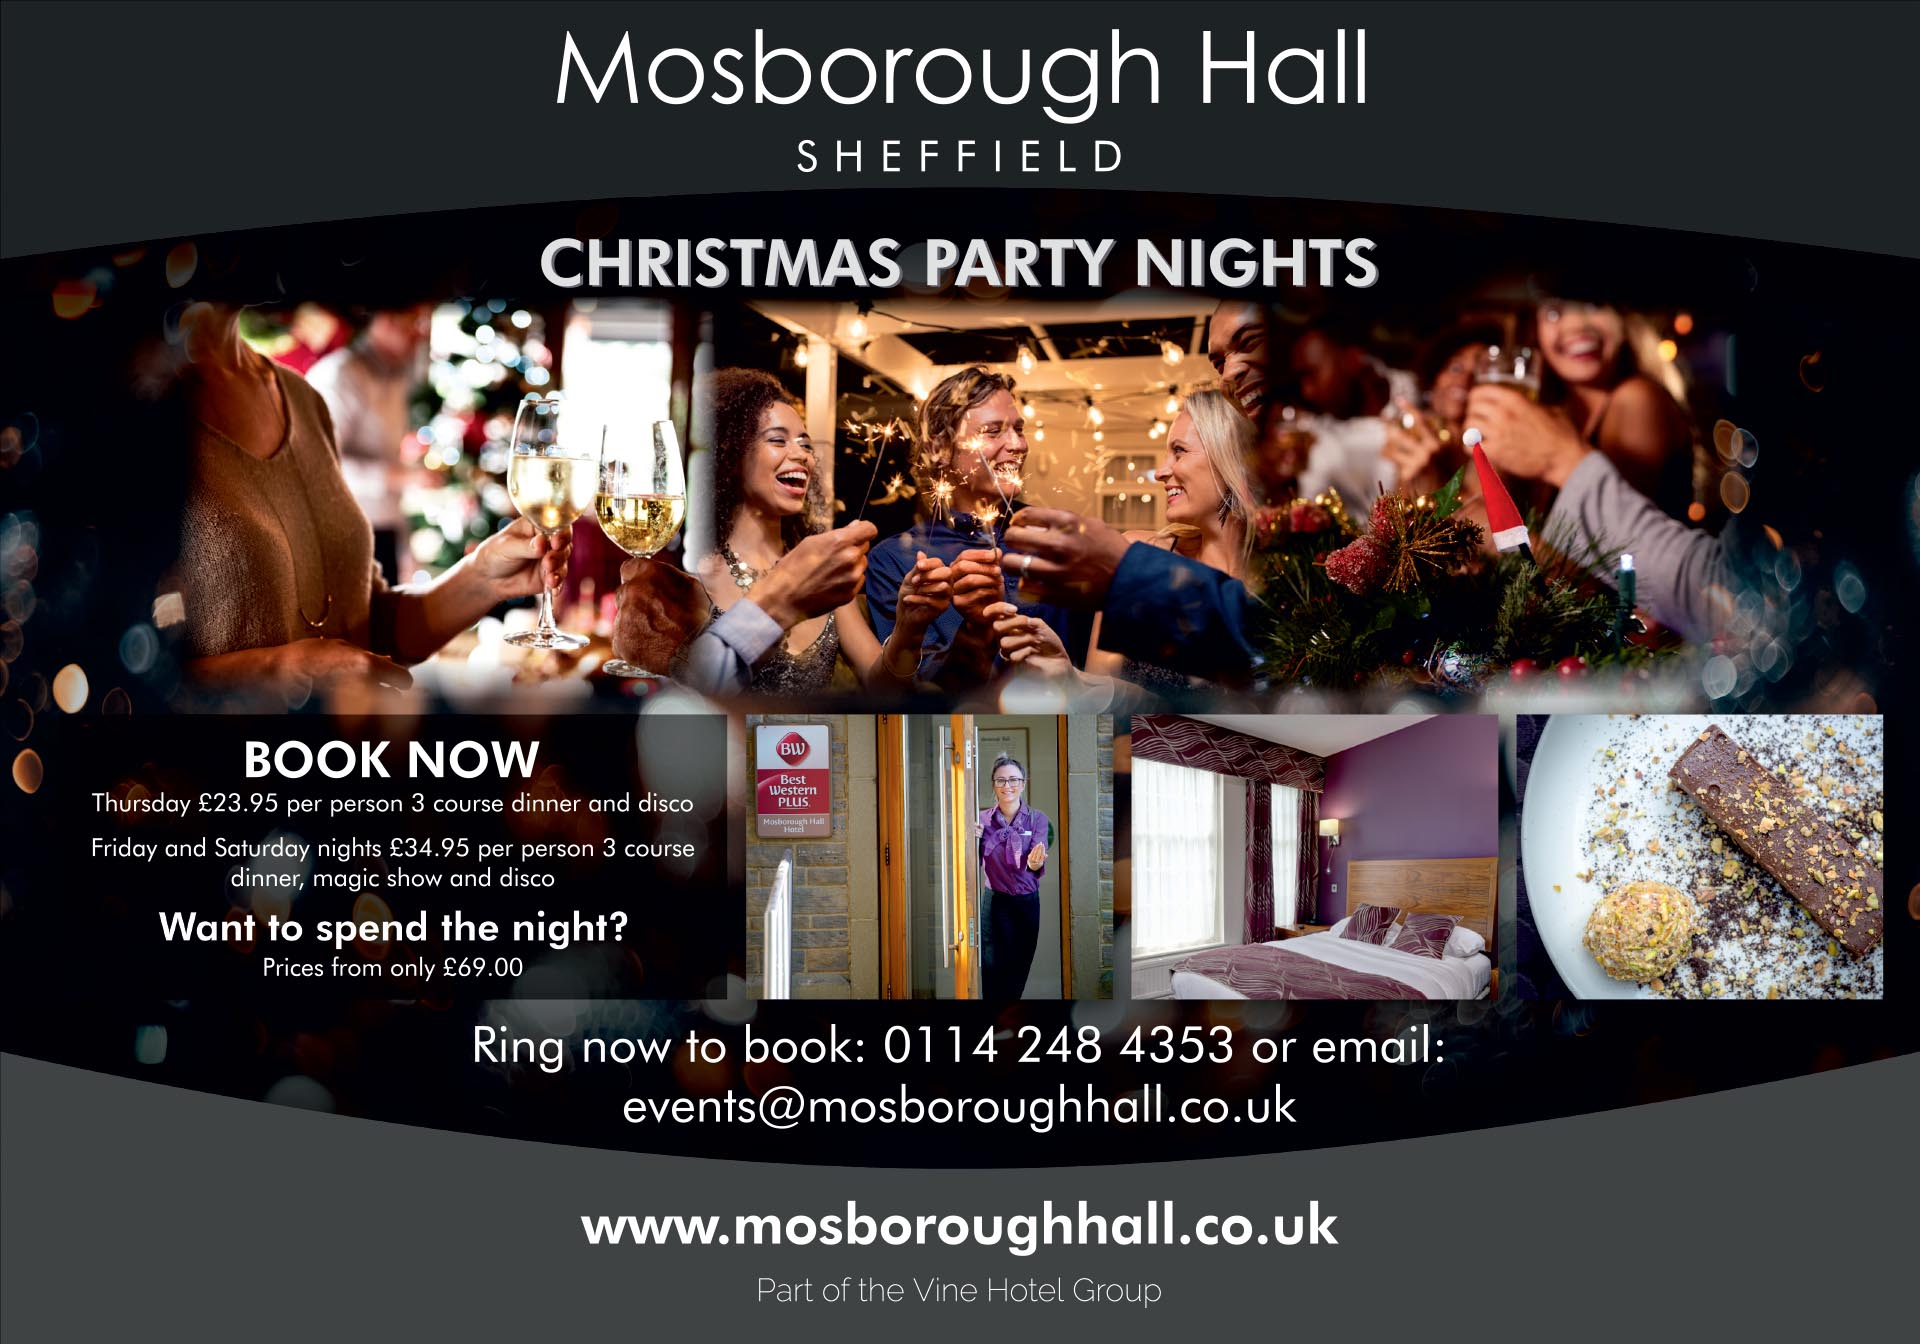 Derbyshire Life Half Page September Christmas Party Nights at Mosborough Hall